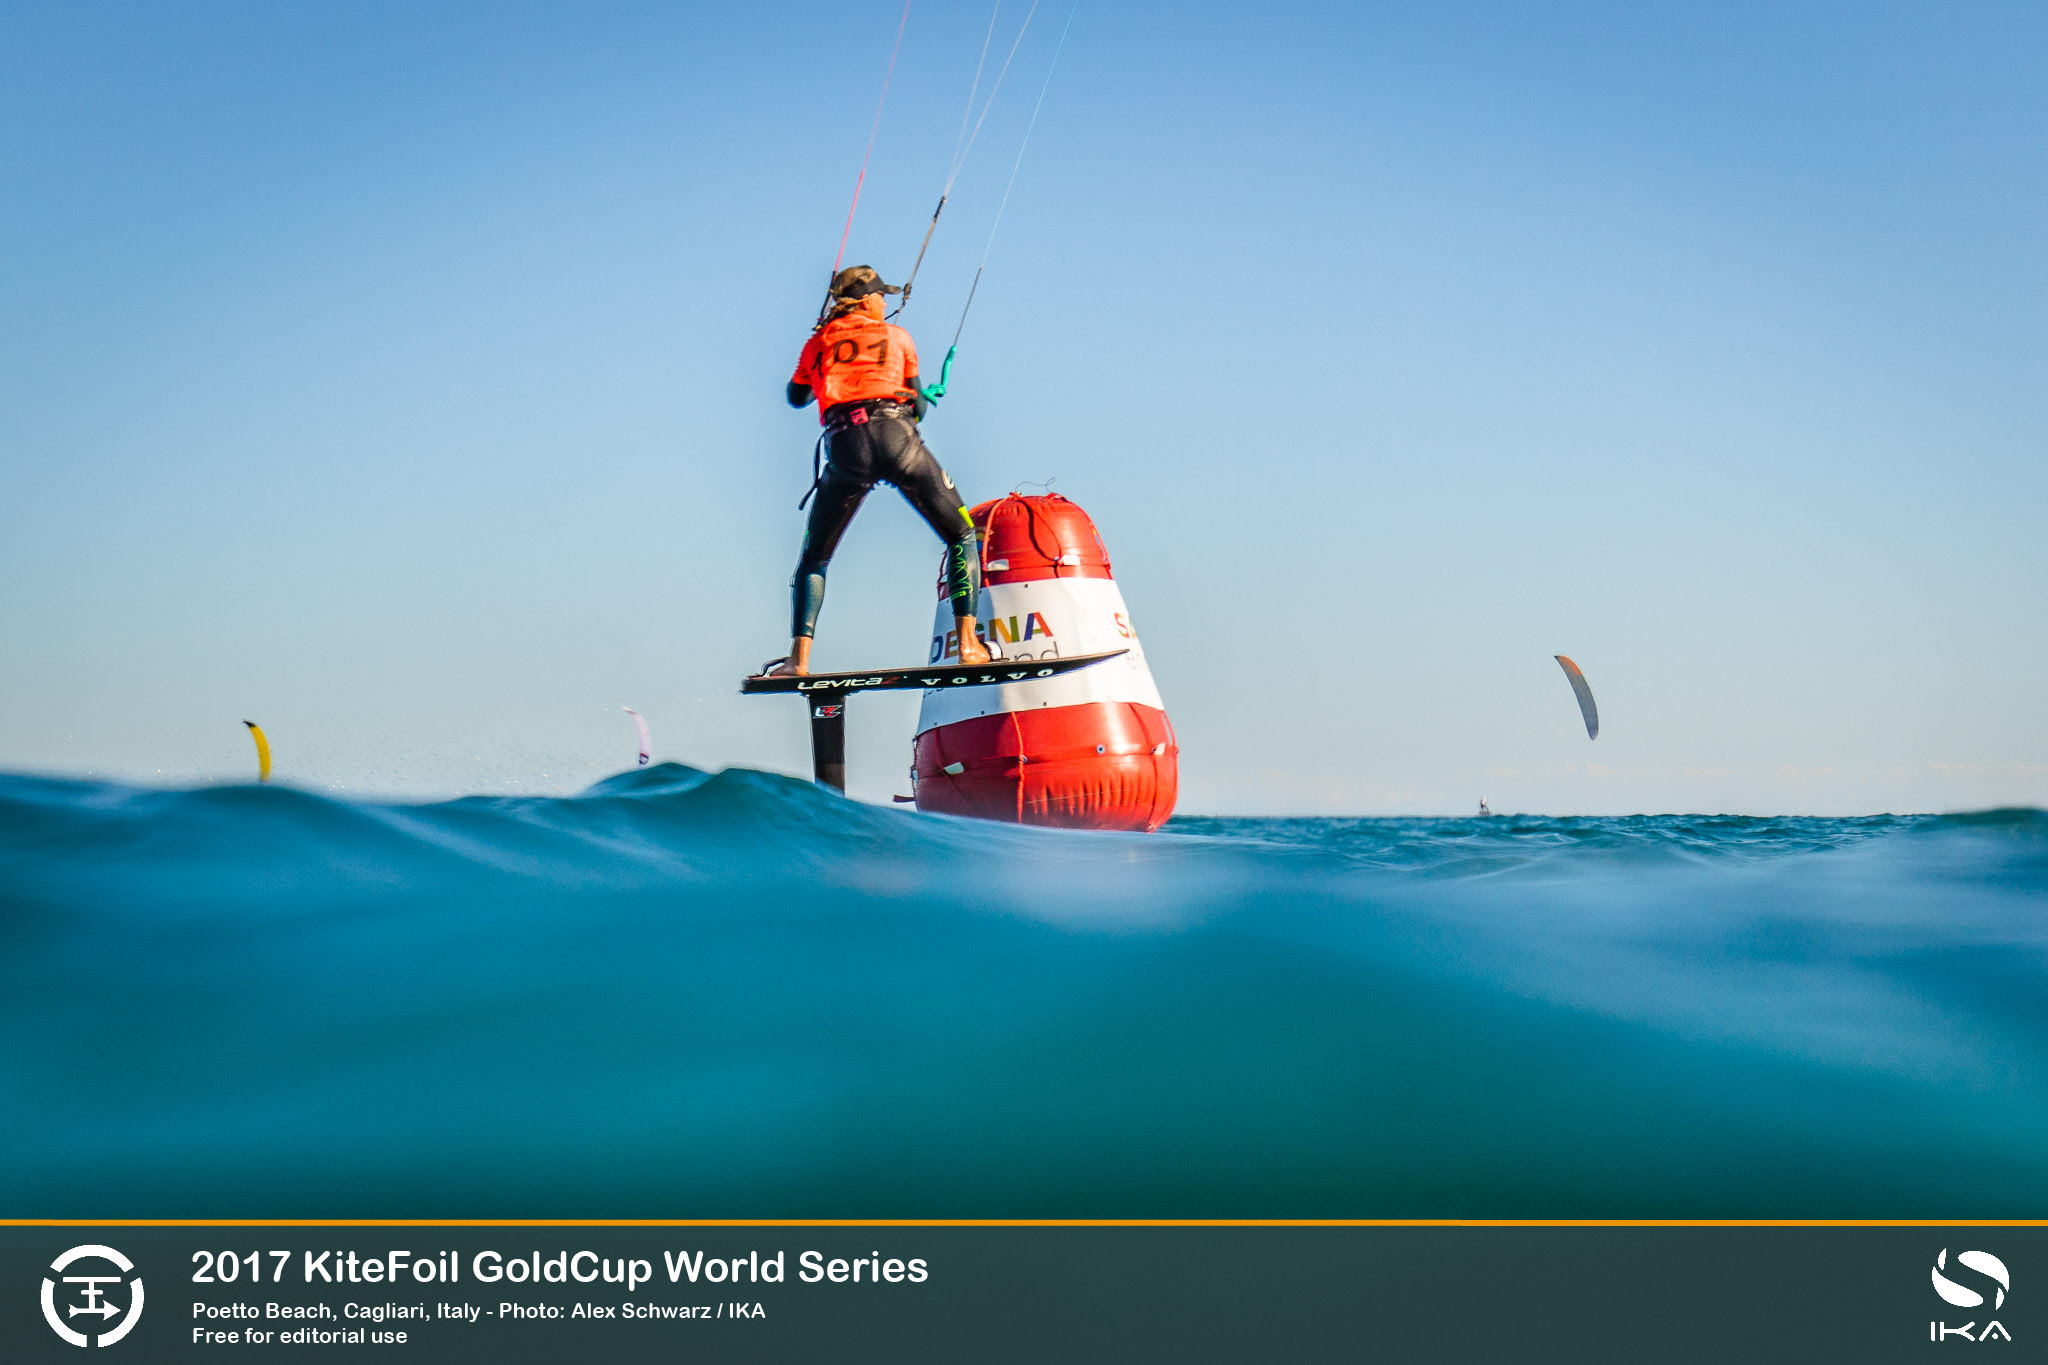 bc1464f5 a4a5 47b8 b677 e0d2f111c28f - Final day of racing at KiteFoil World Championships